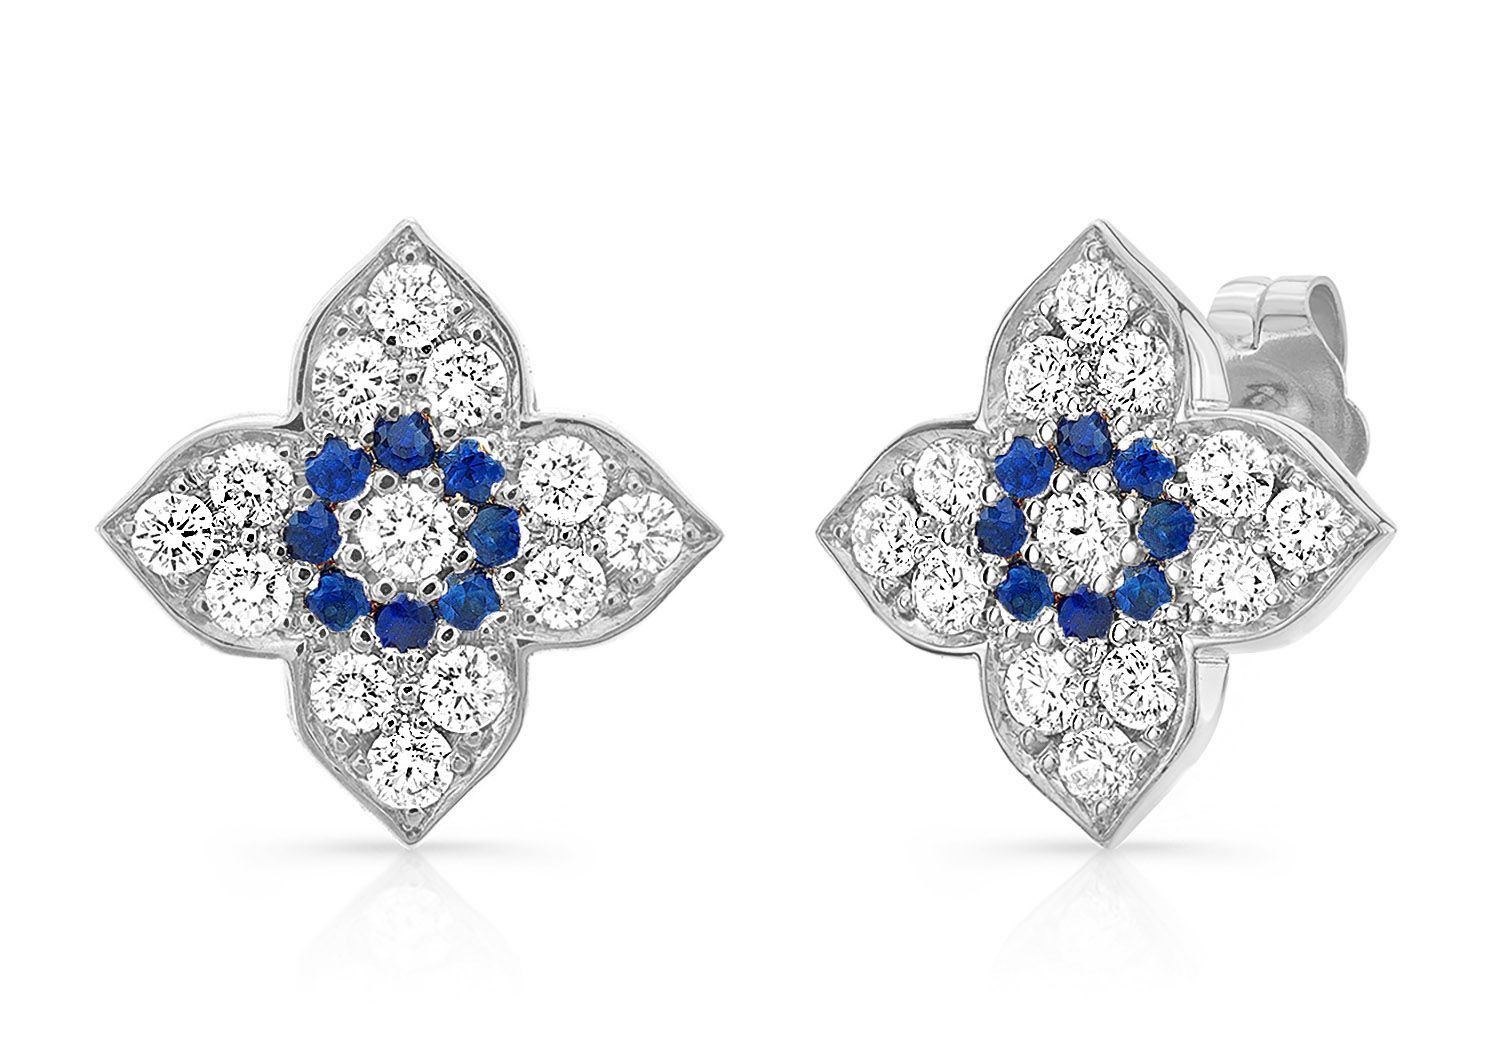 MAKE LOVE LOTUS DIAMOND EARRINGS - AMRIT Jewelry